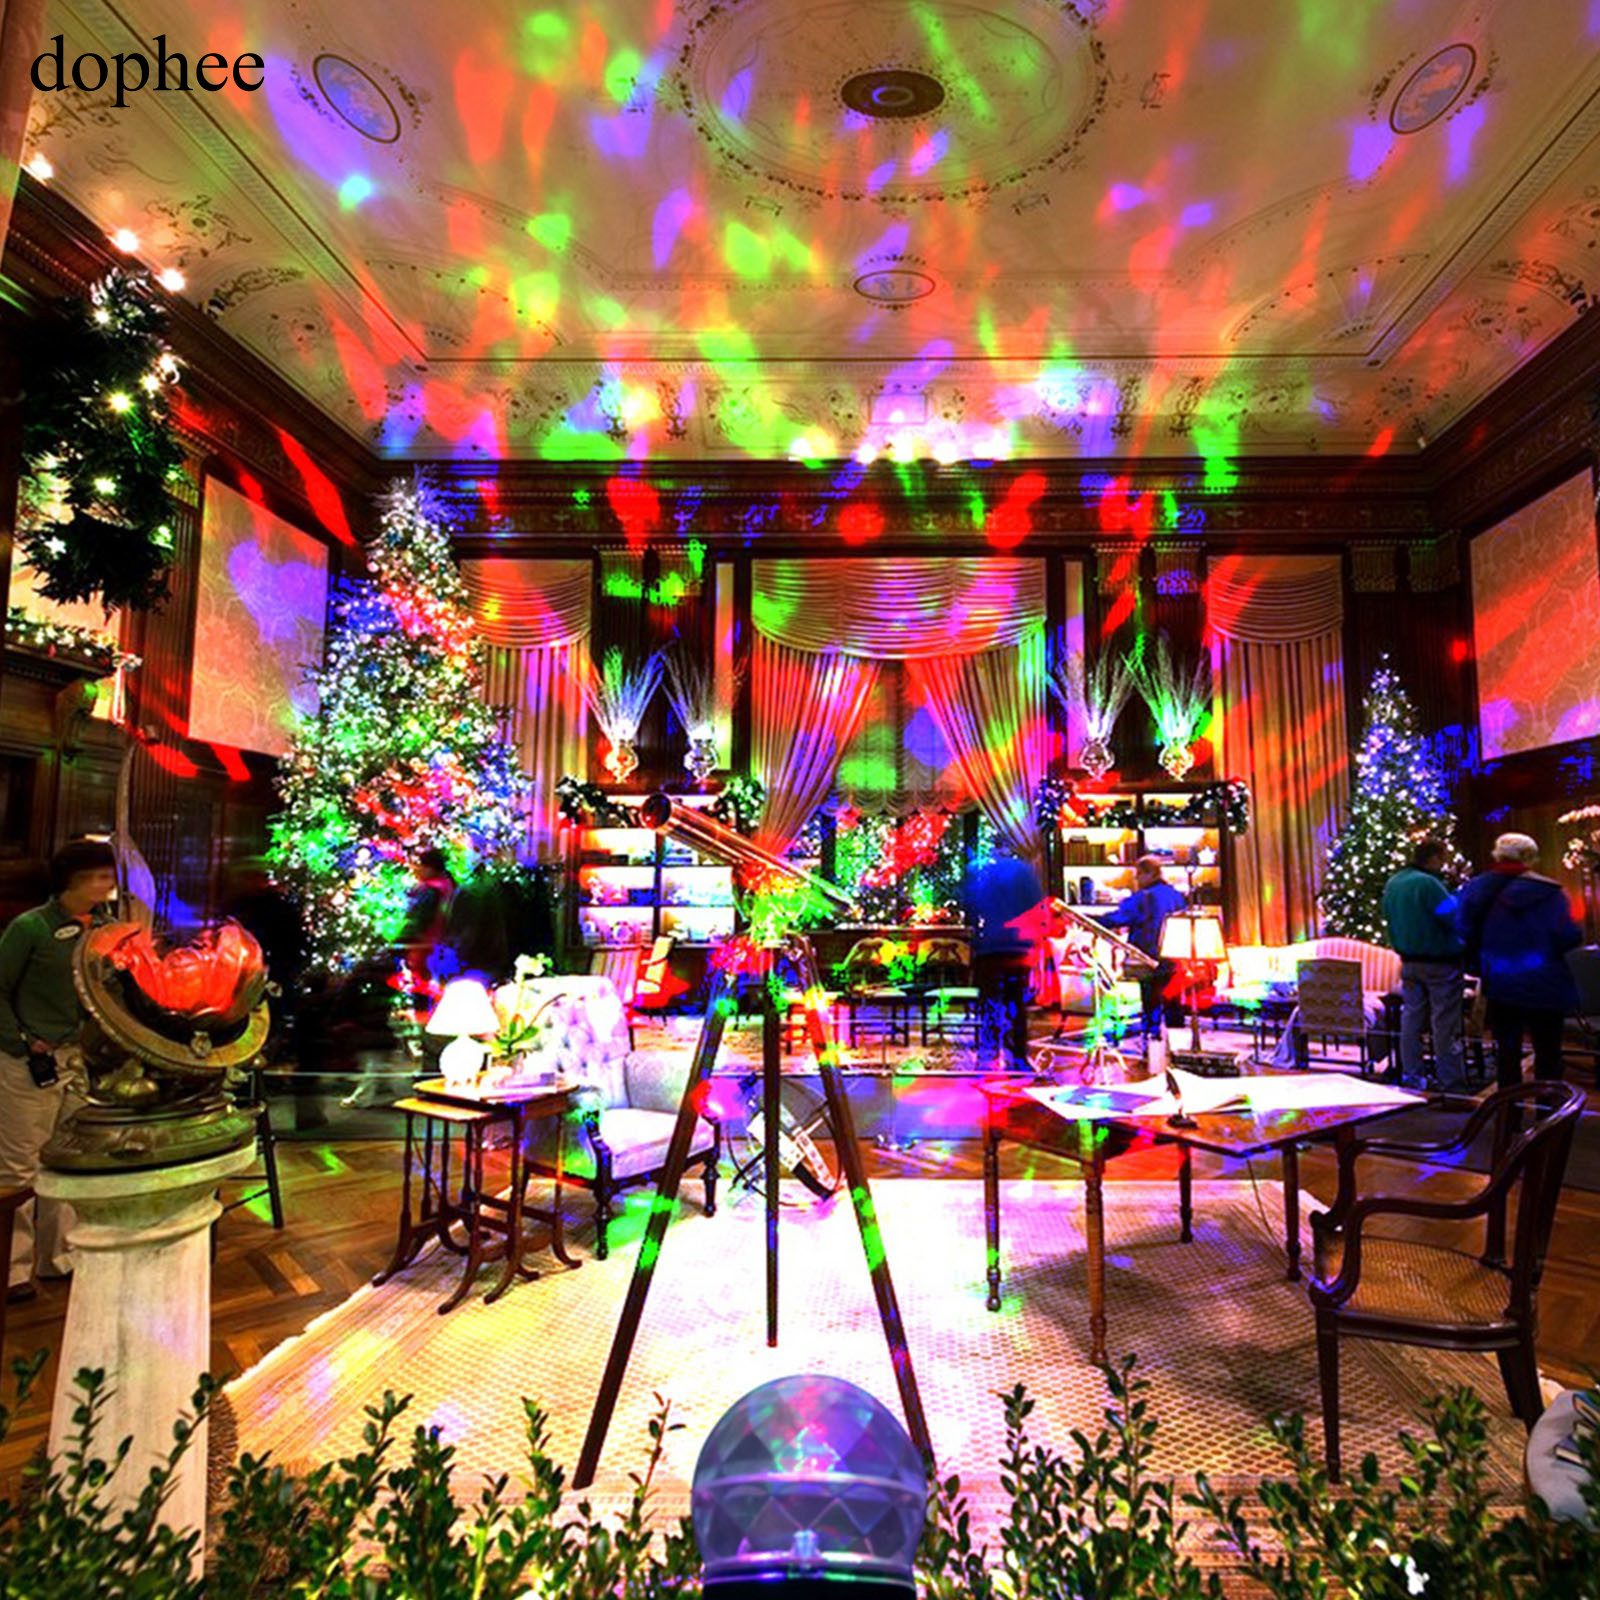 dophee Outdoor Projector Lights IP44 Waterproof and Cool White + multi-Color for Christmas or Birthday Party Holiday decoration.